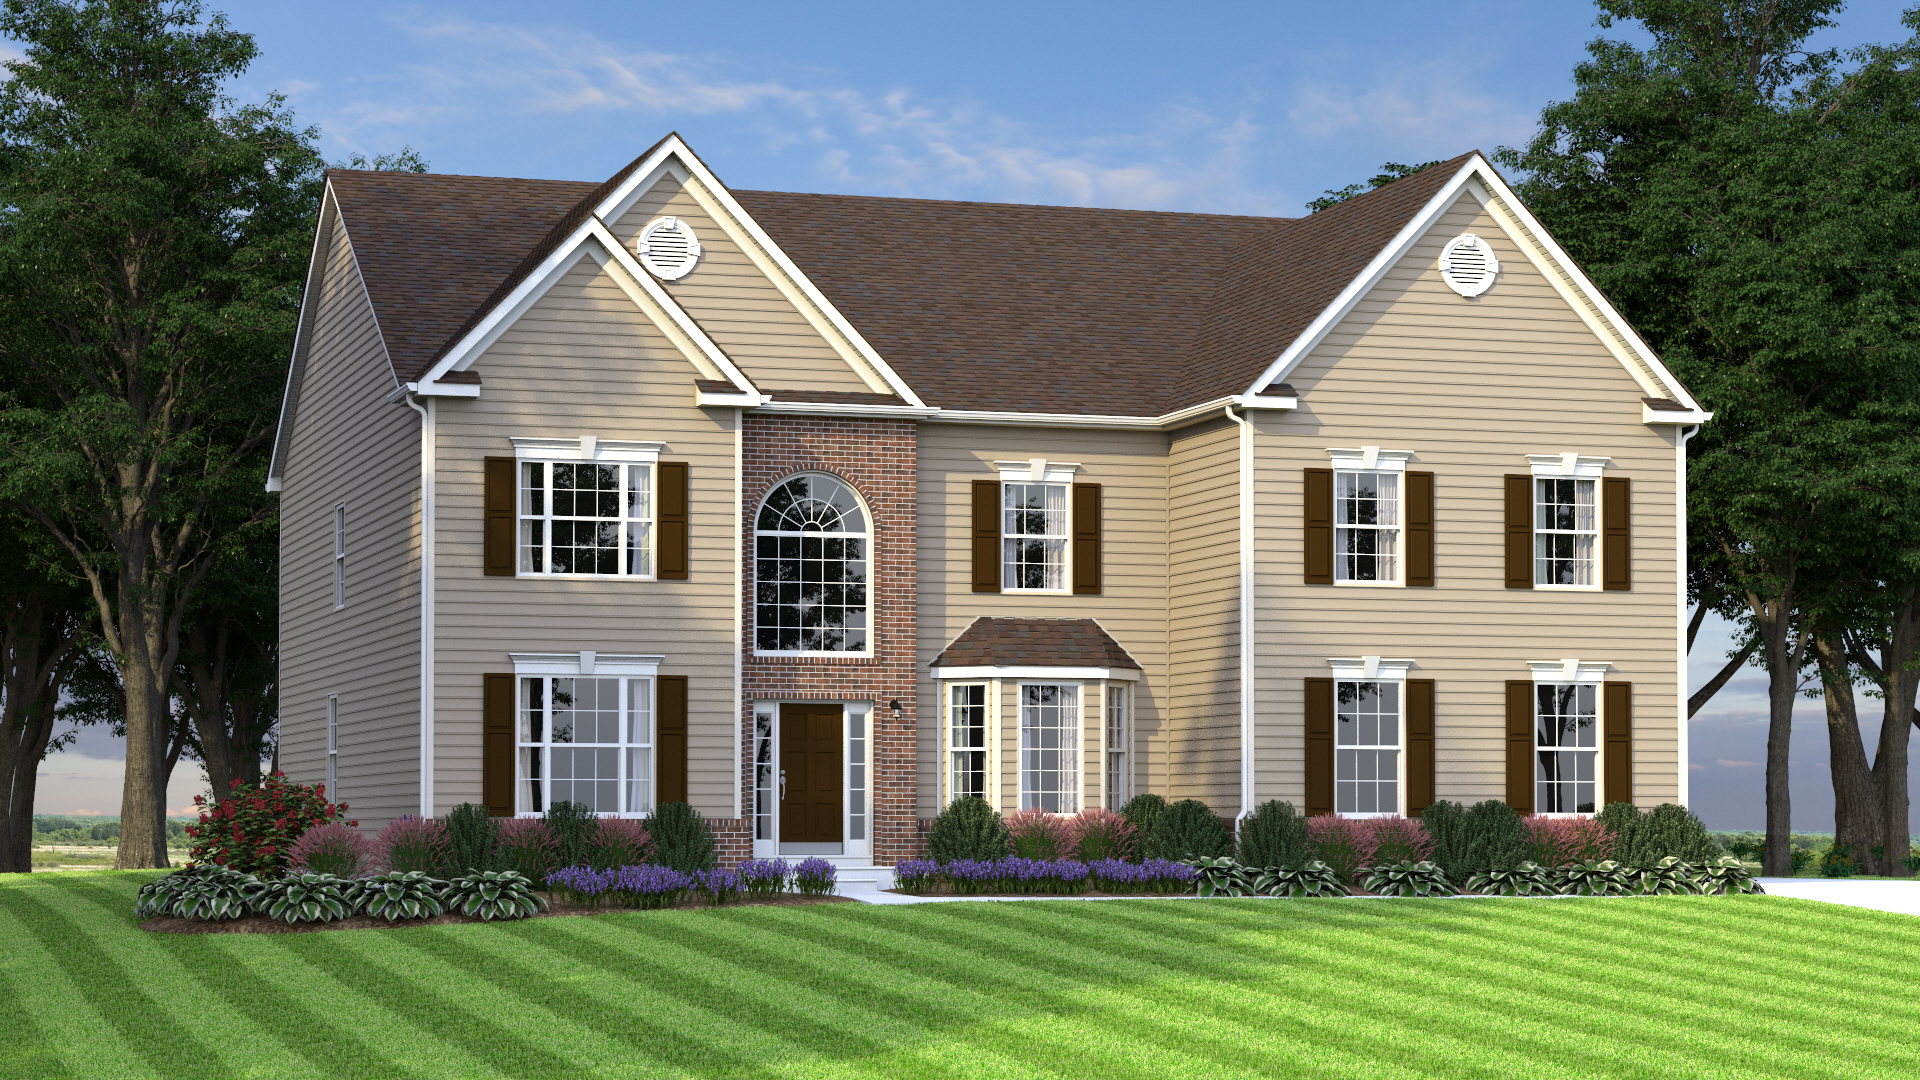 The Gatsby  4,000 sf / 4 br / 3.5 ba / 2 car garage Starting at $401,990